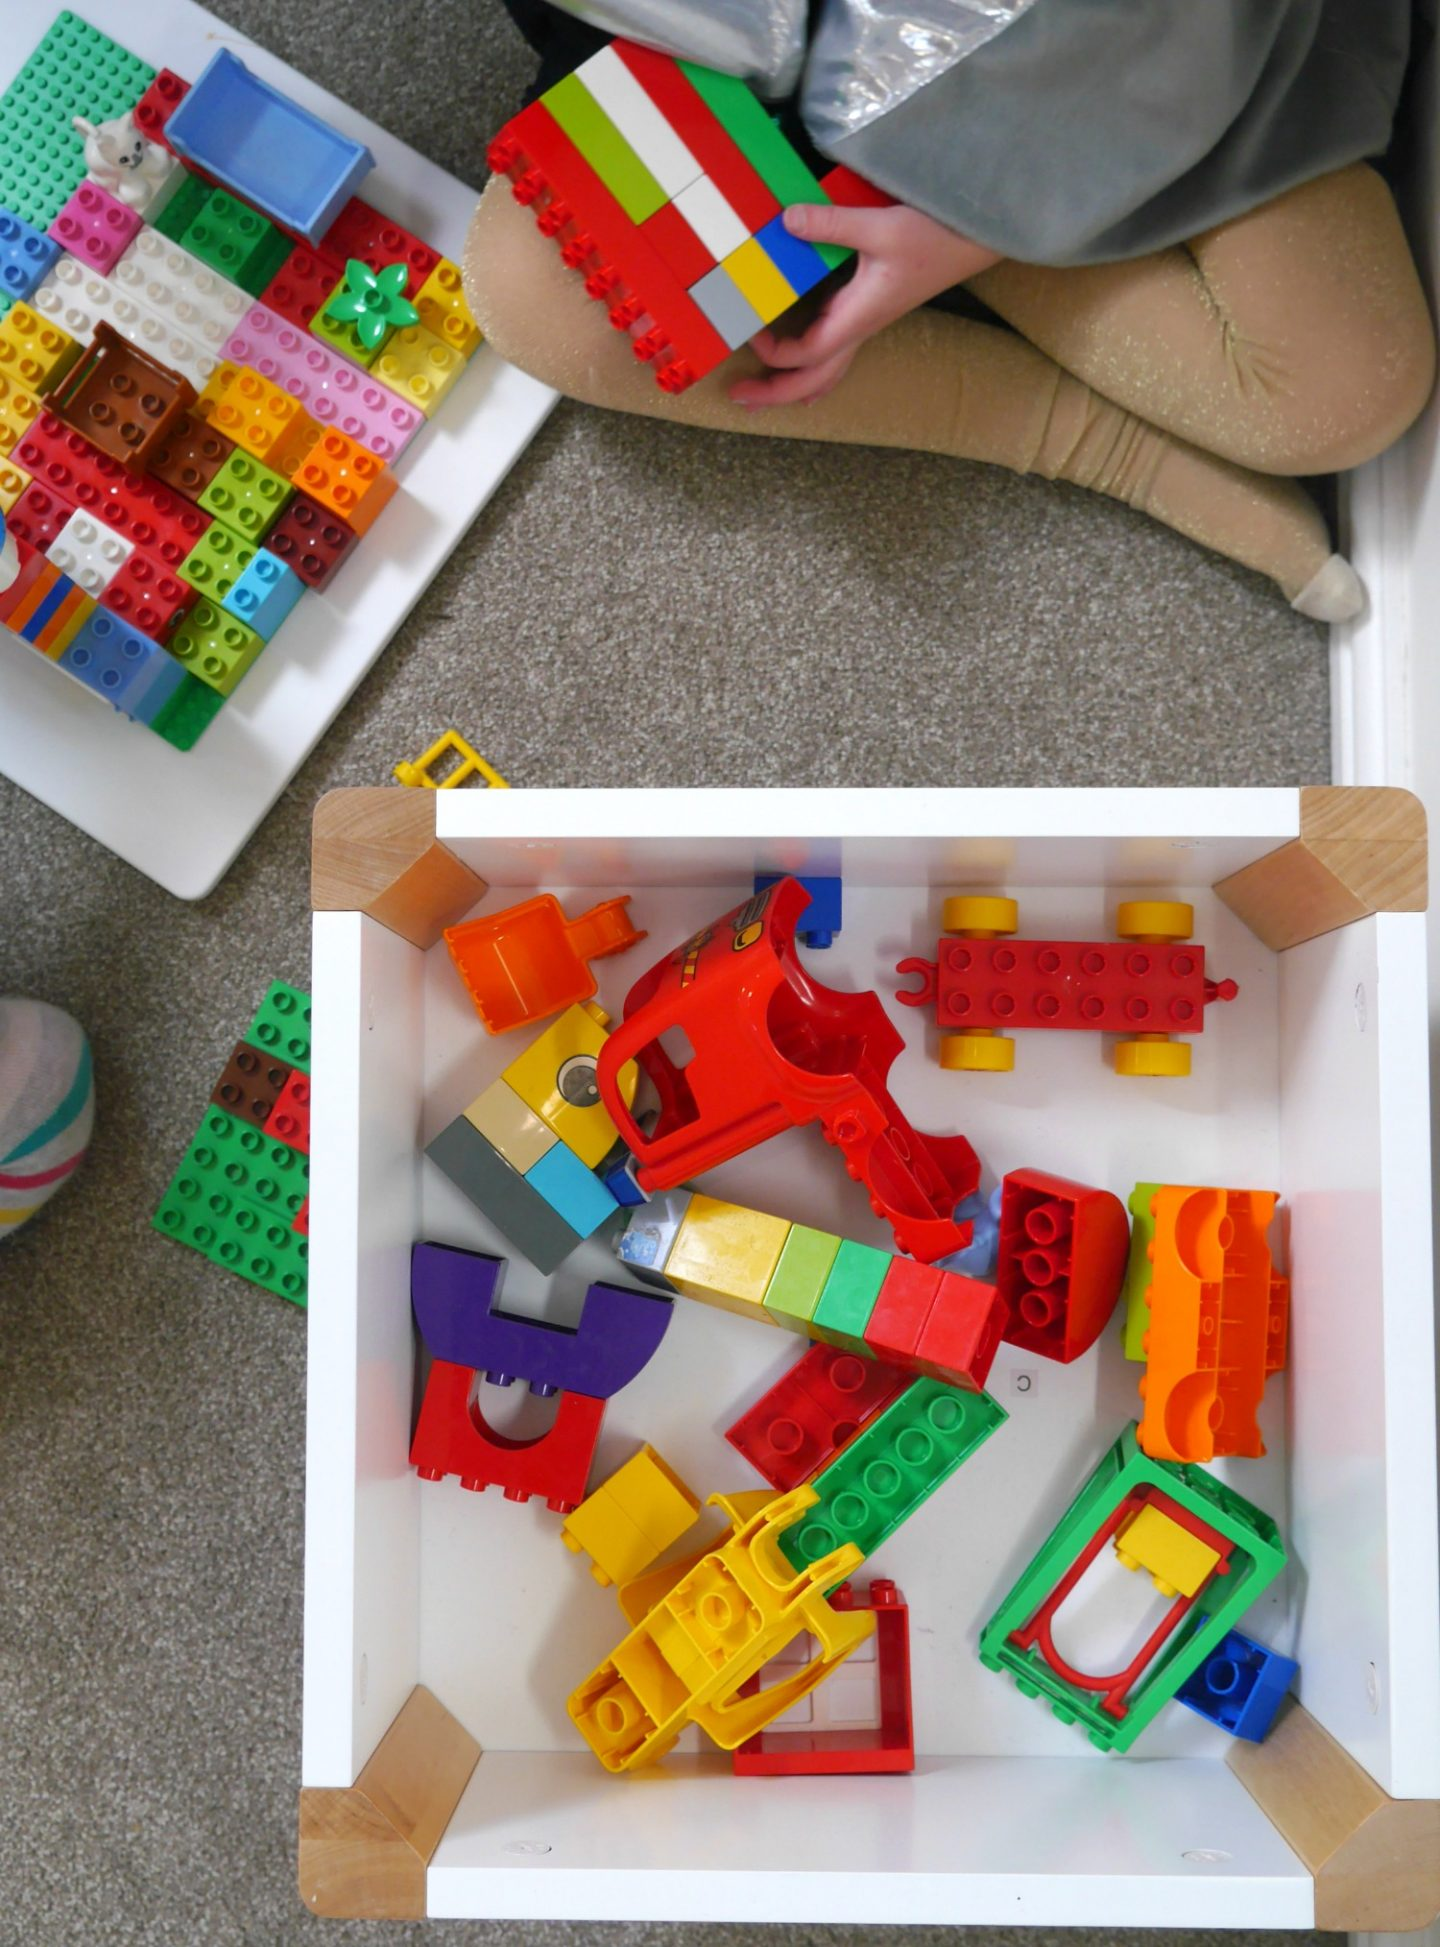 Making a Lego Duplo table - view from above